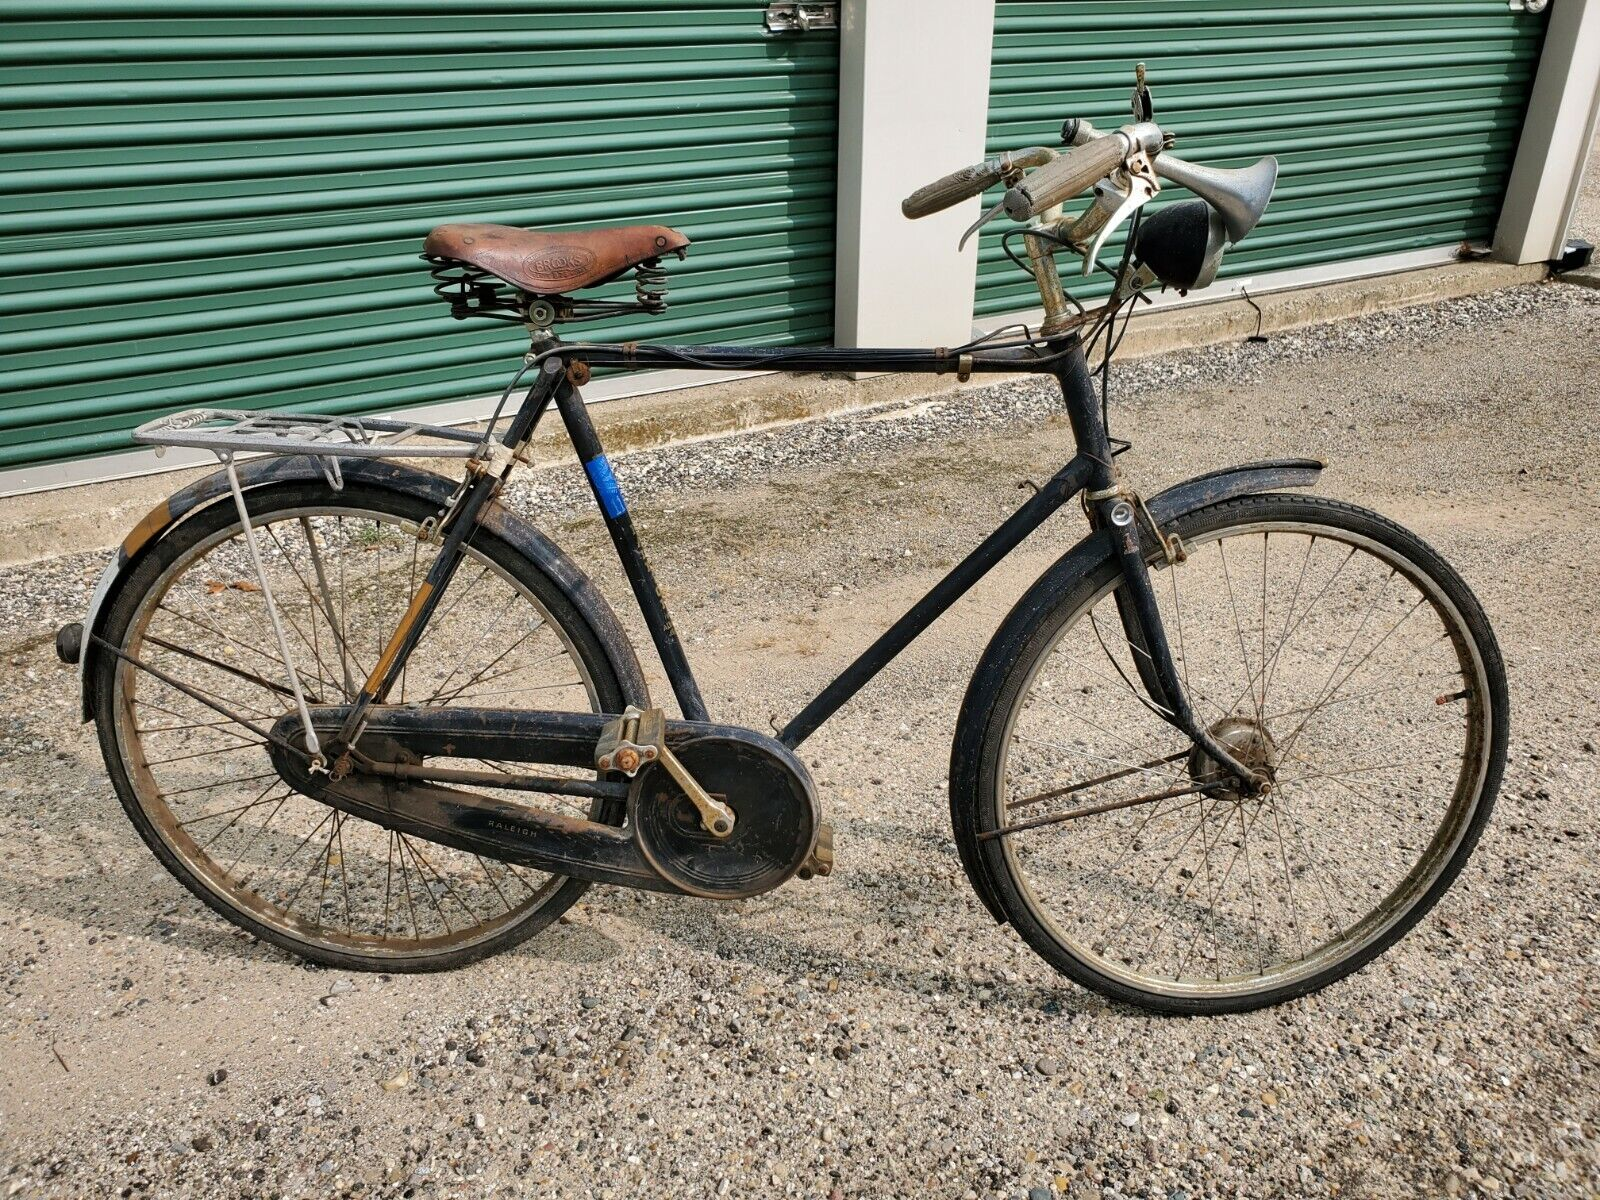 * Vintage Men's Raleigh Roadster Bicycle, Complete barn find 1950's (750 USD)